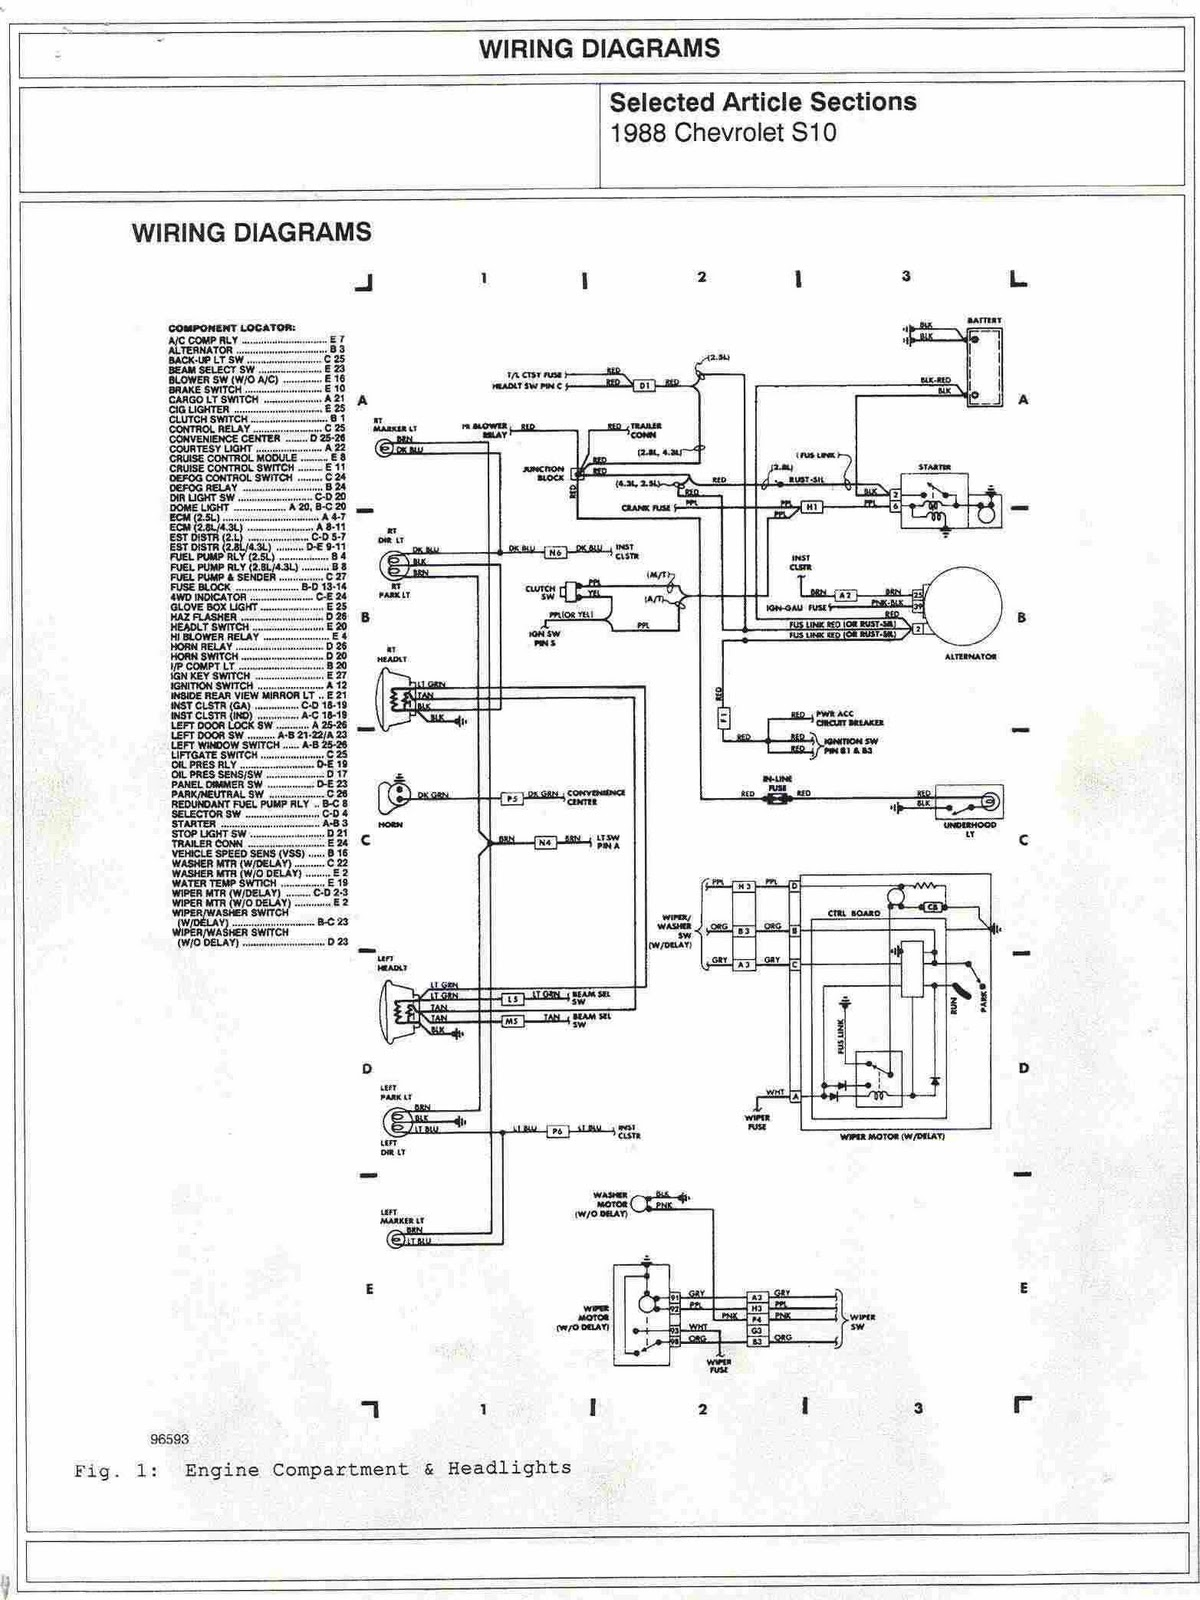 hight resolution of schematics u2022 wiring 1988 chevrolet s10 engine compartment